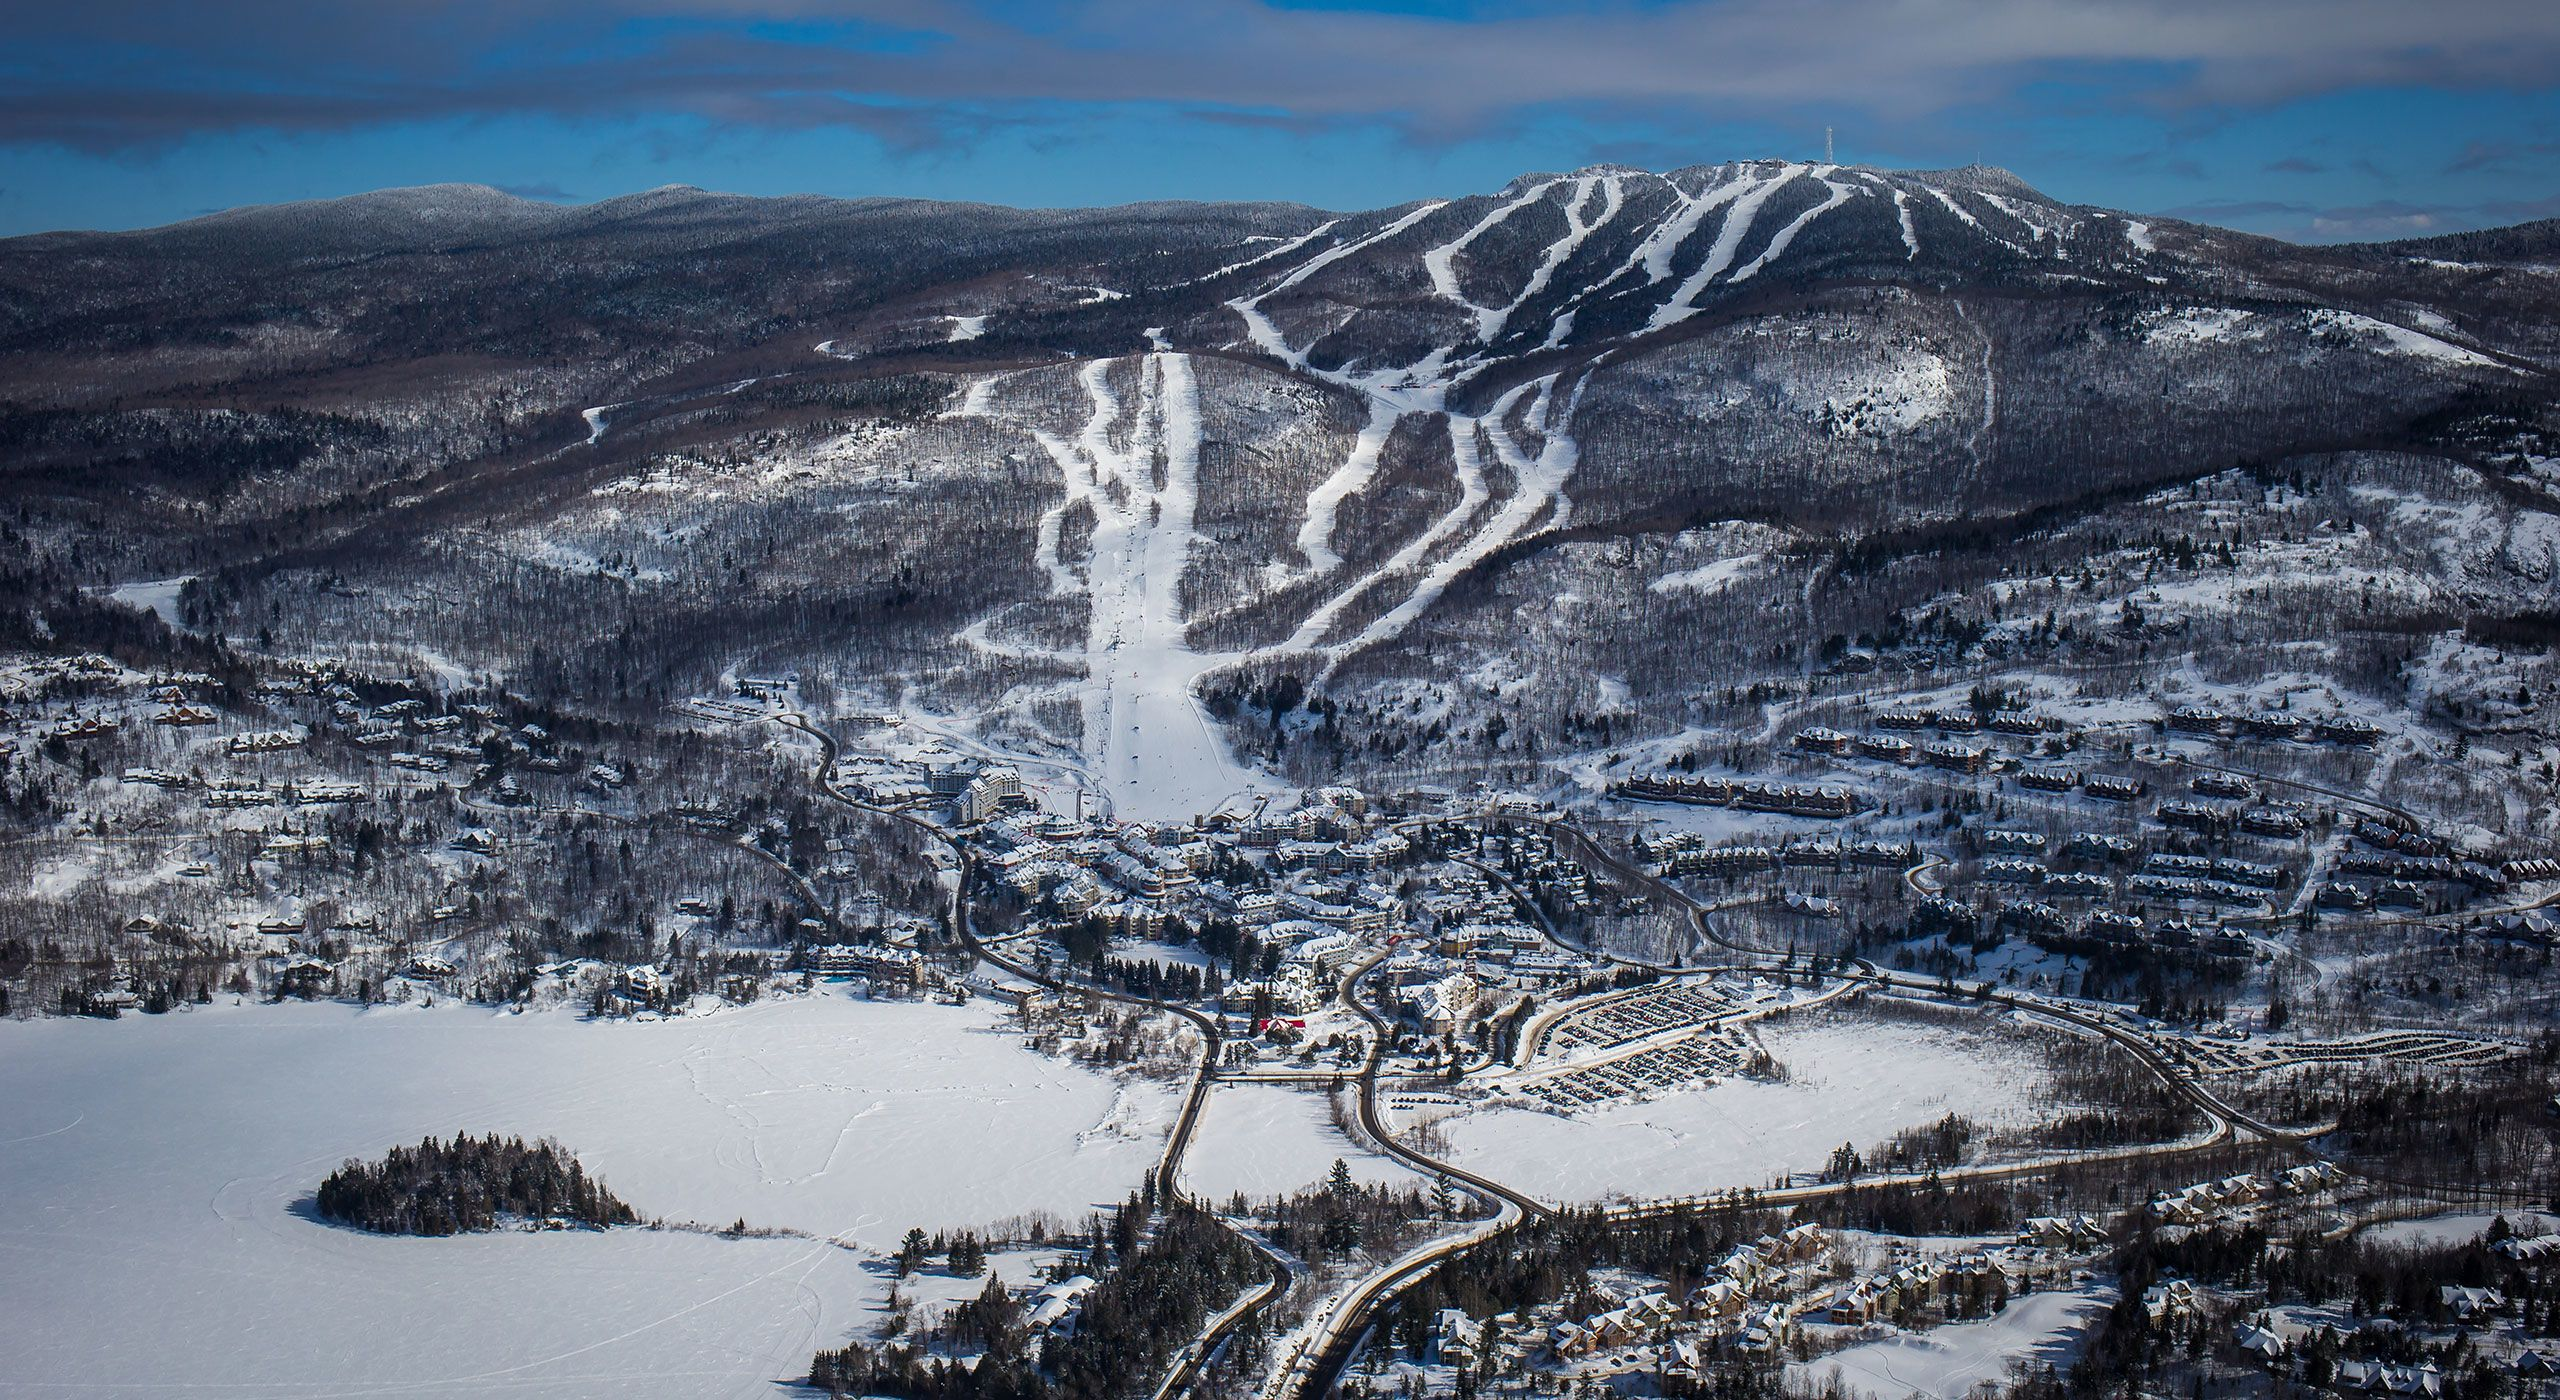 mont tremblant, quebec: where european charm & natural beauty unite